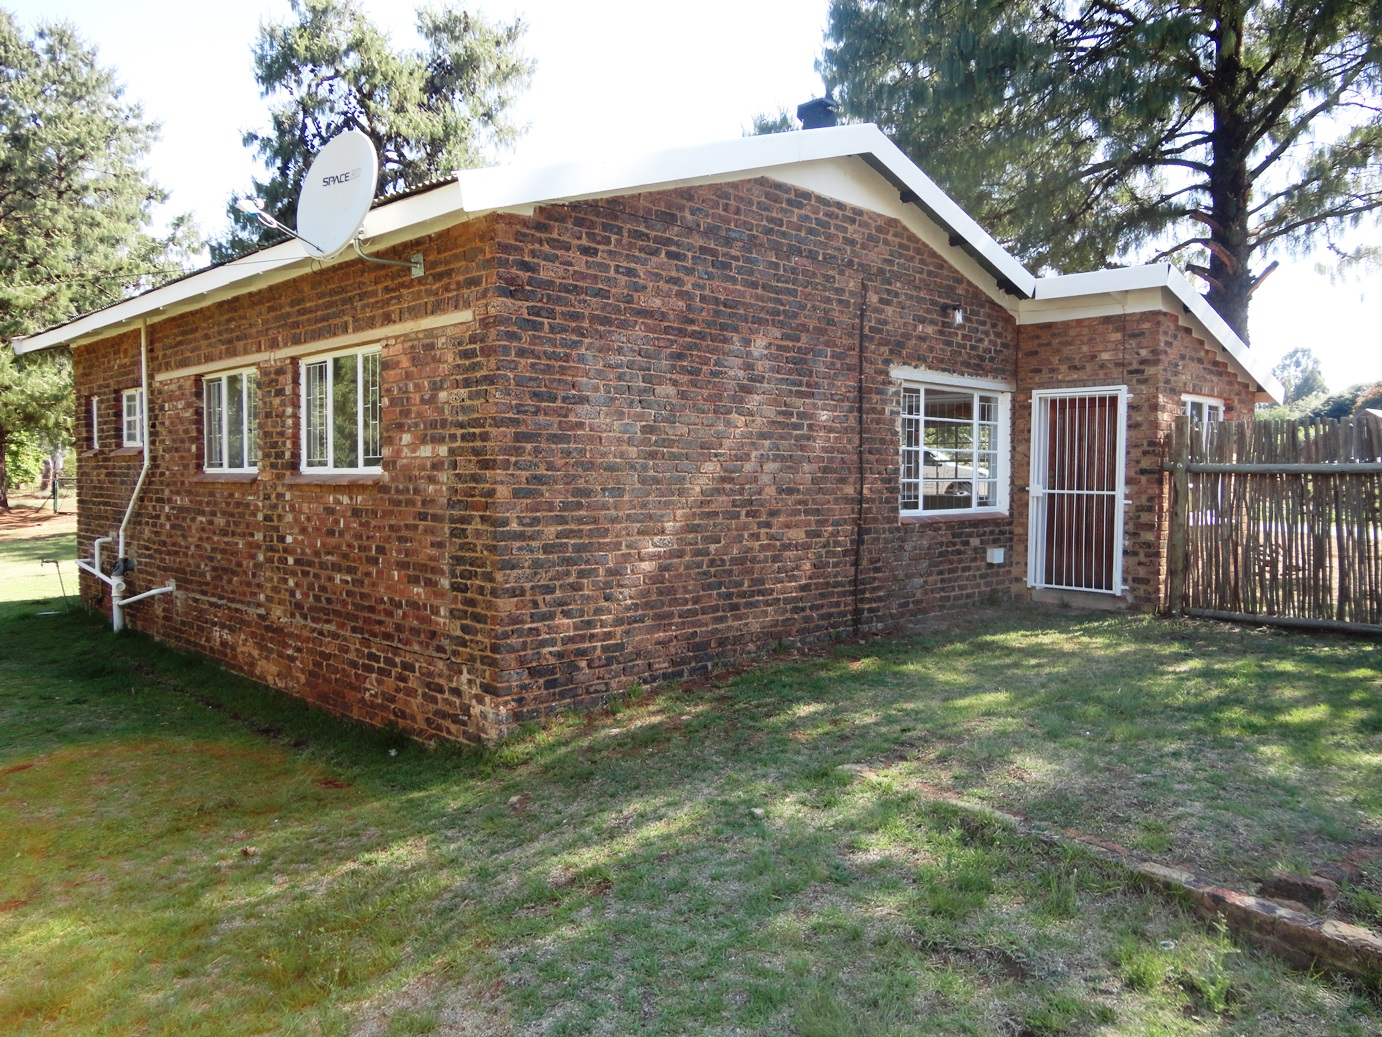 ZH389_-_Well_located_home_in_Dullstroom__9_